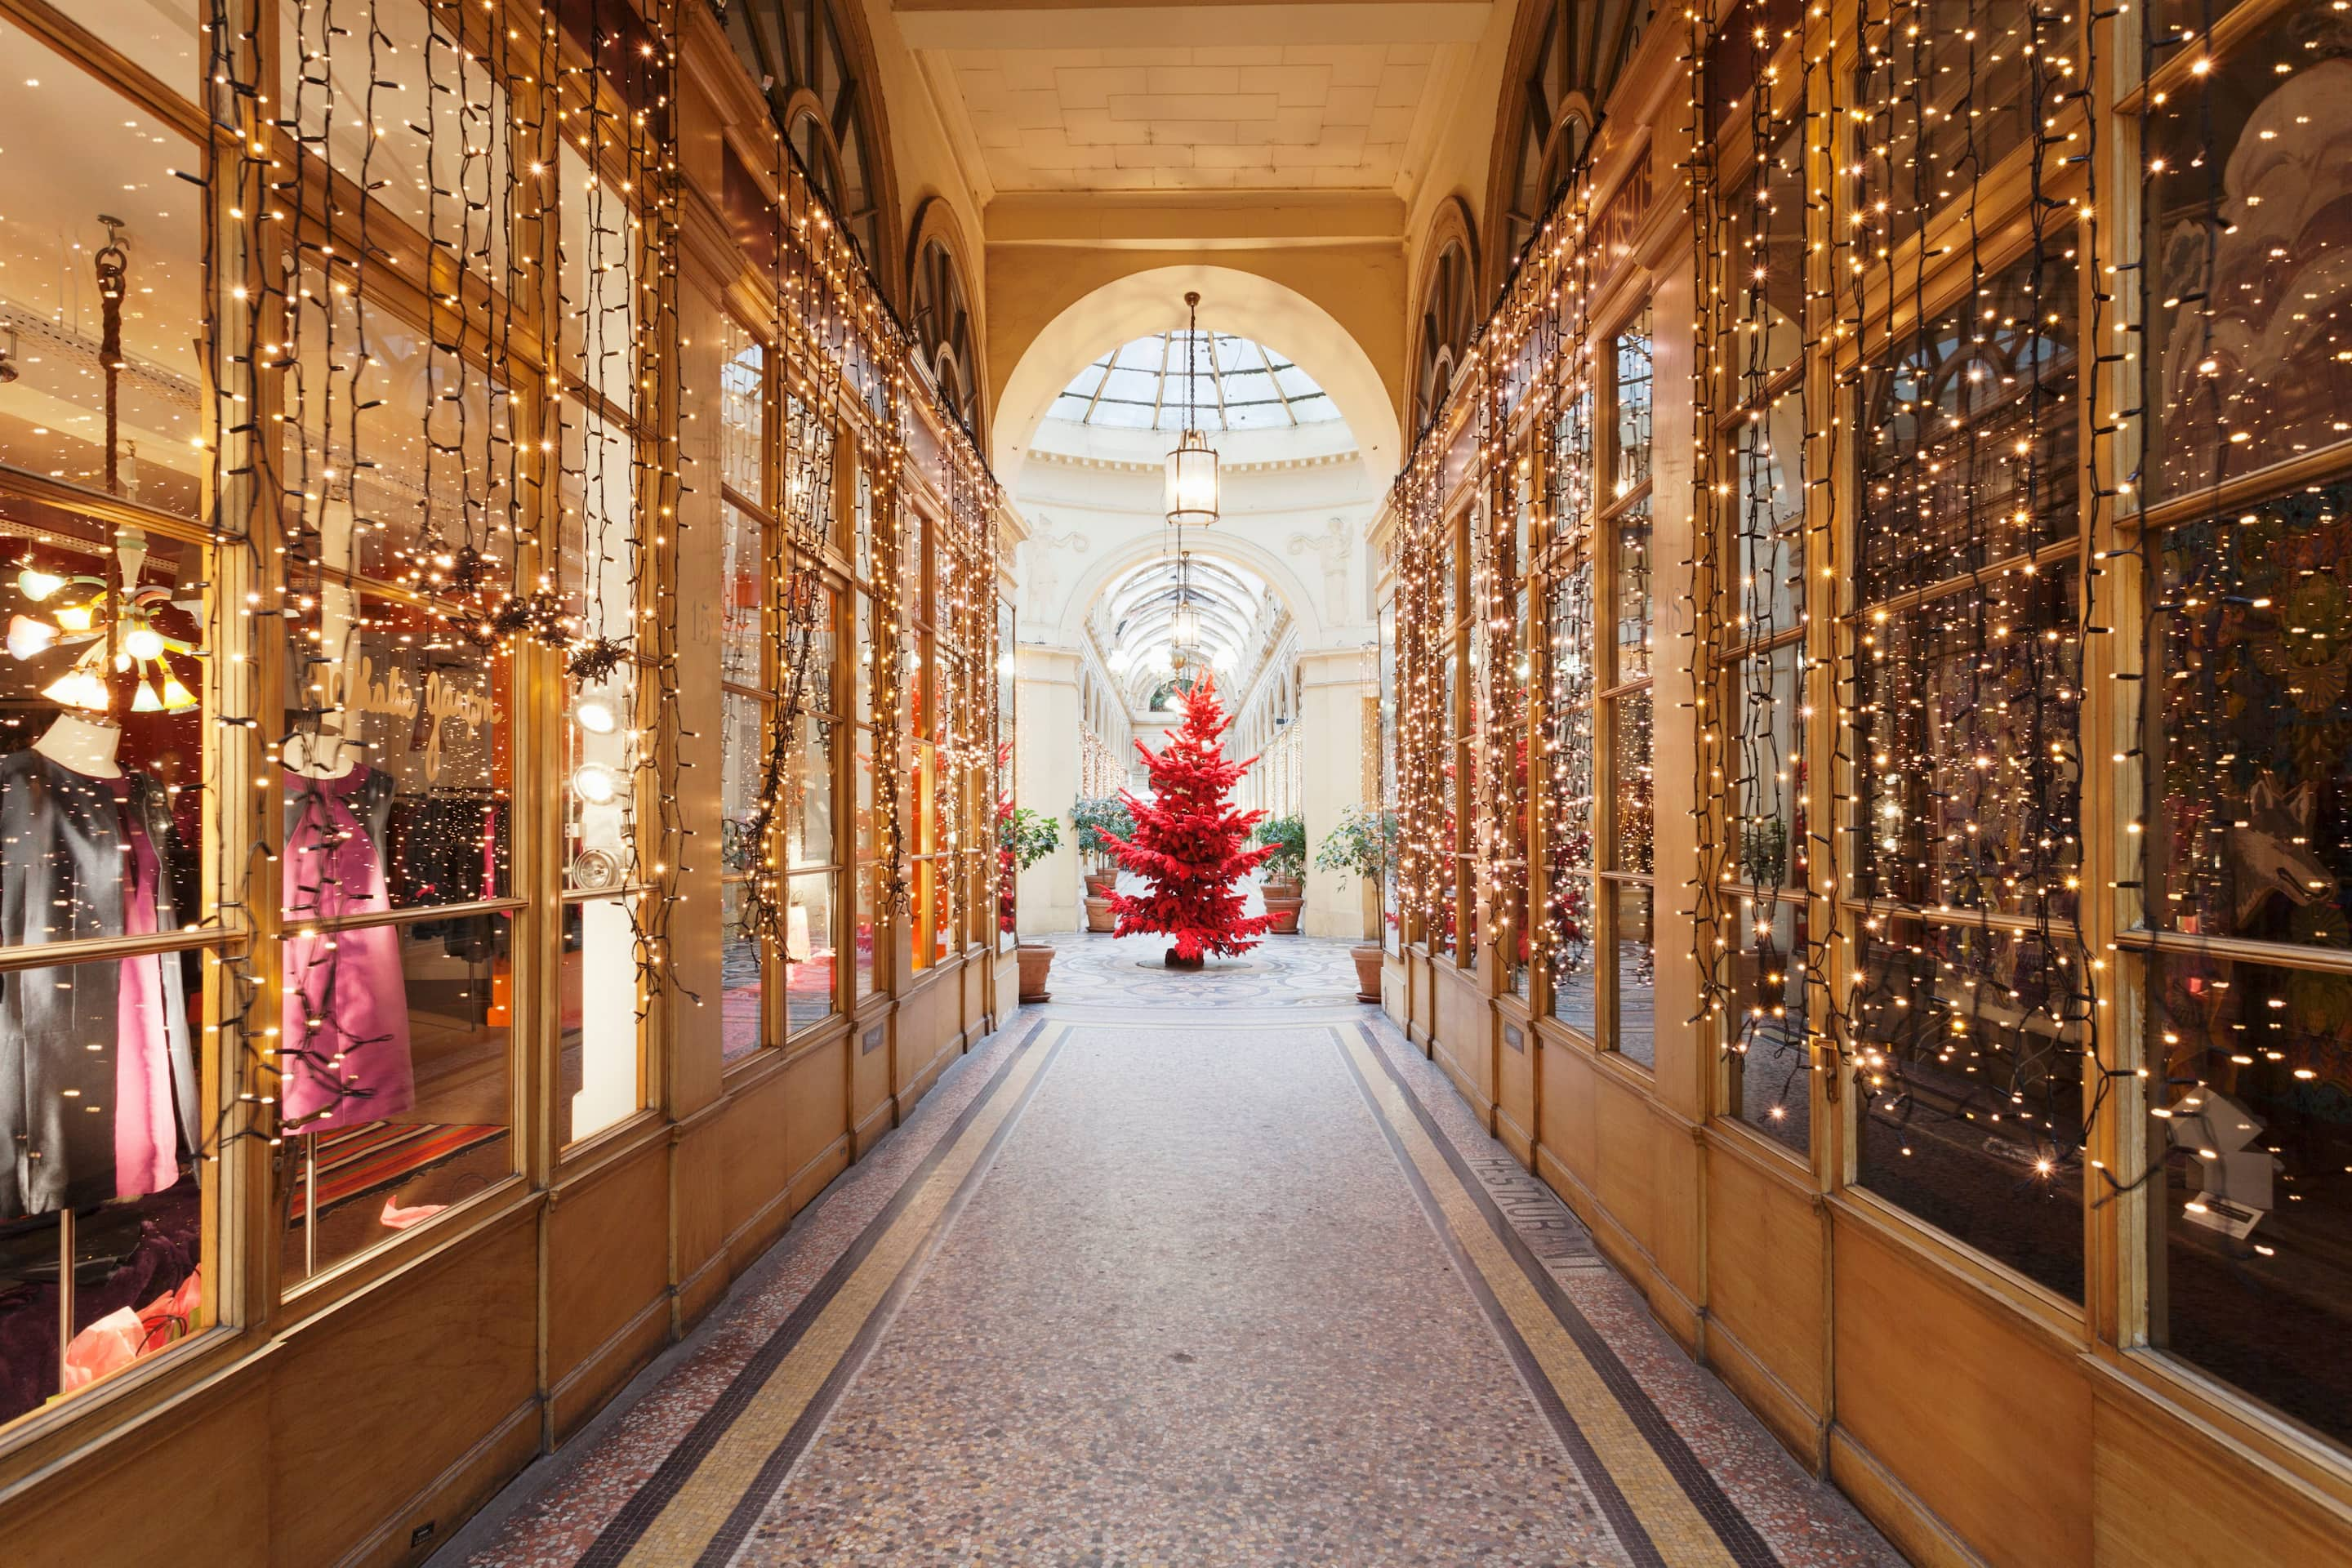 Where to get in the festive spirit this Christmas